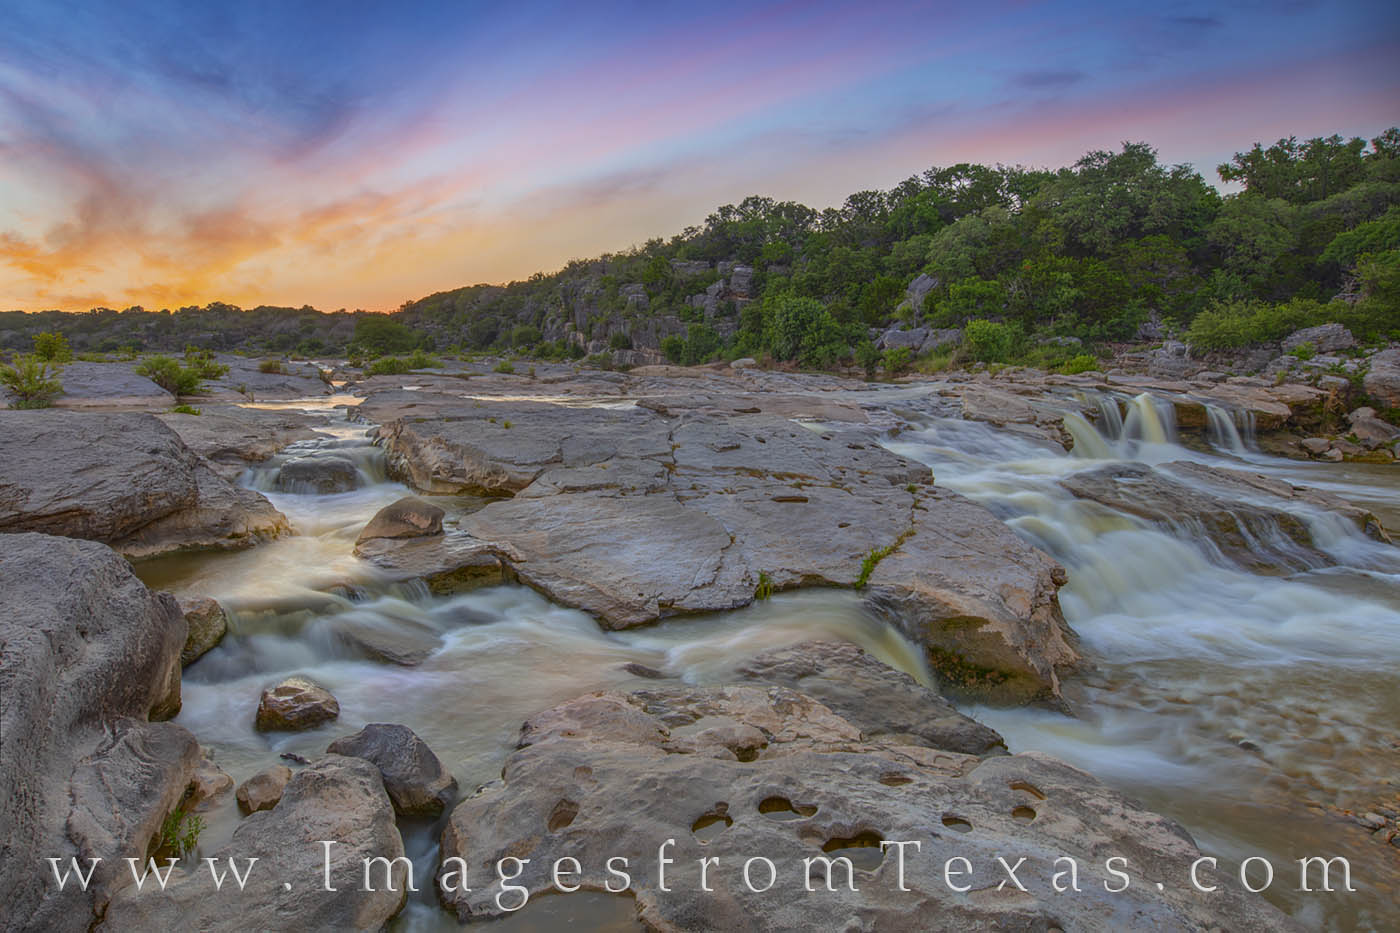 Pedernales Falls, texas state parks, hill country, texas landscapes, best texas images, hill country prints, solitude, summer, water, photo